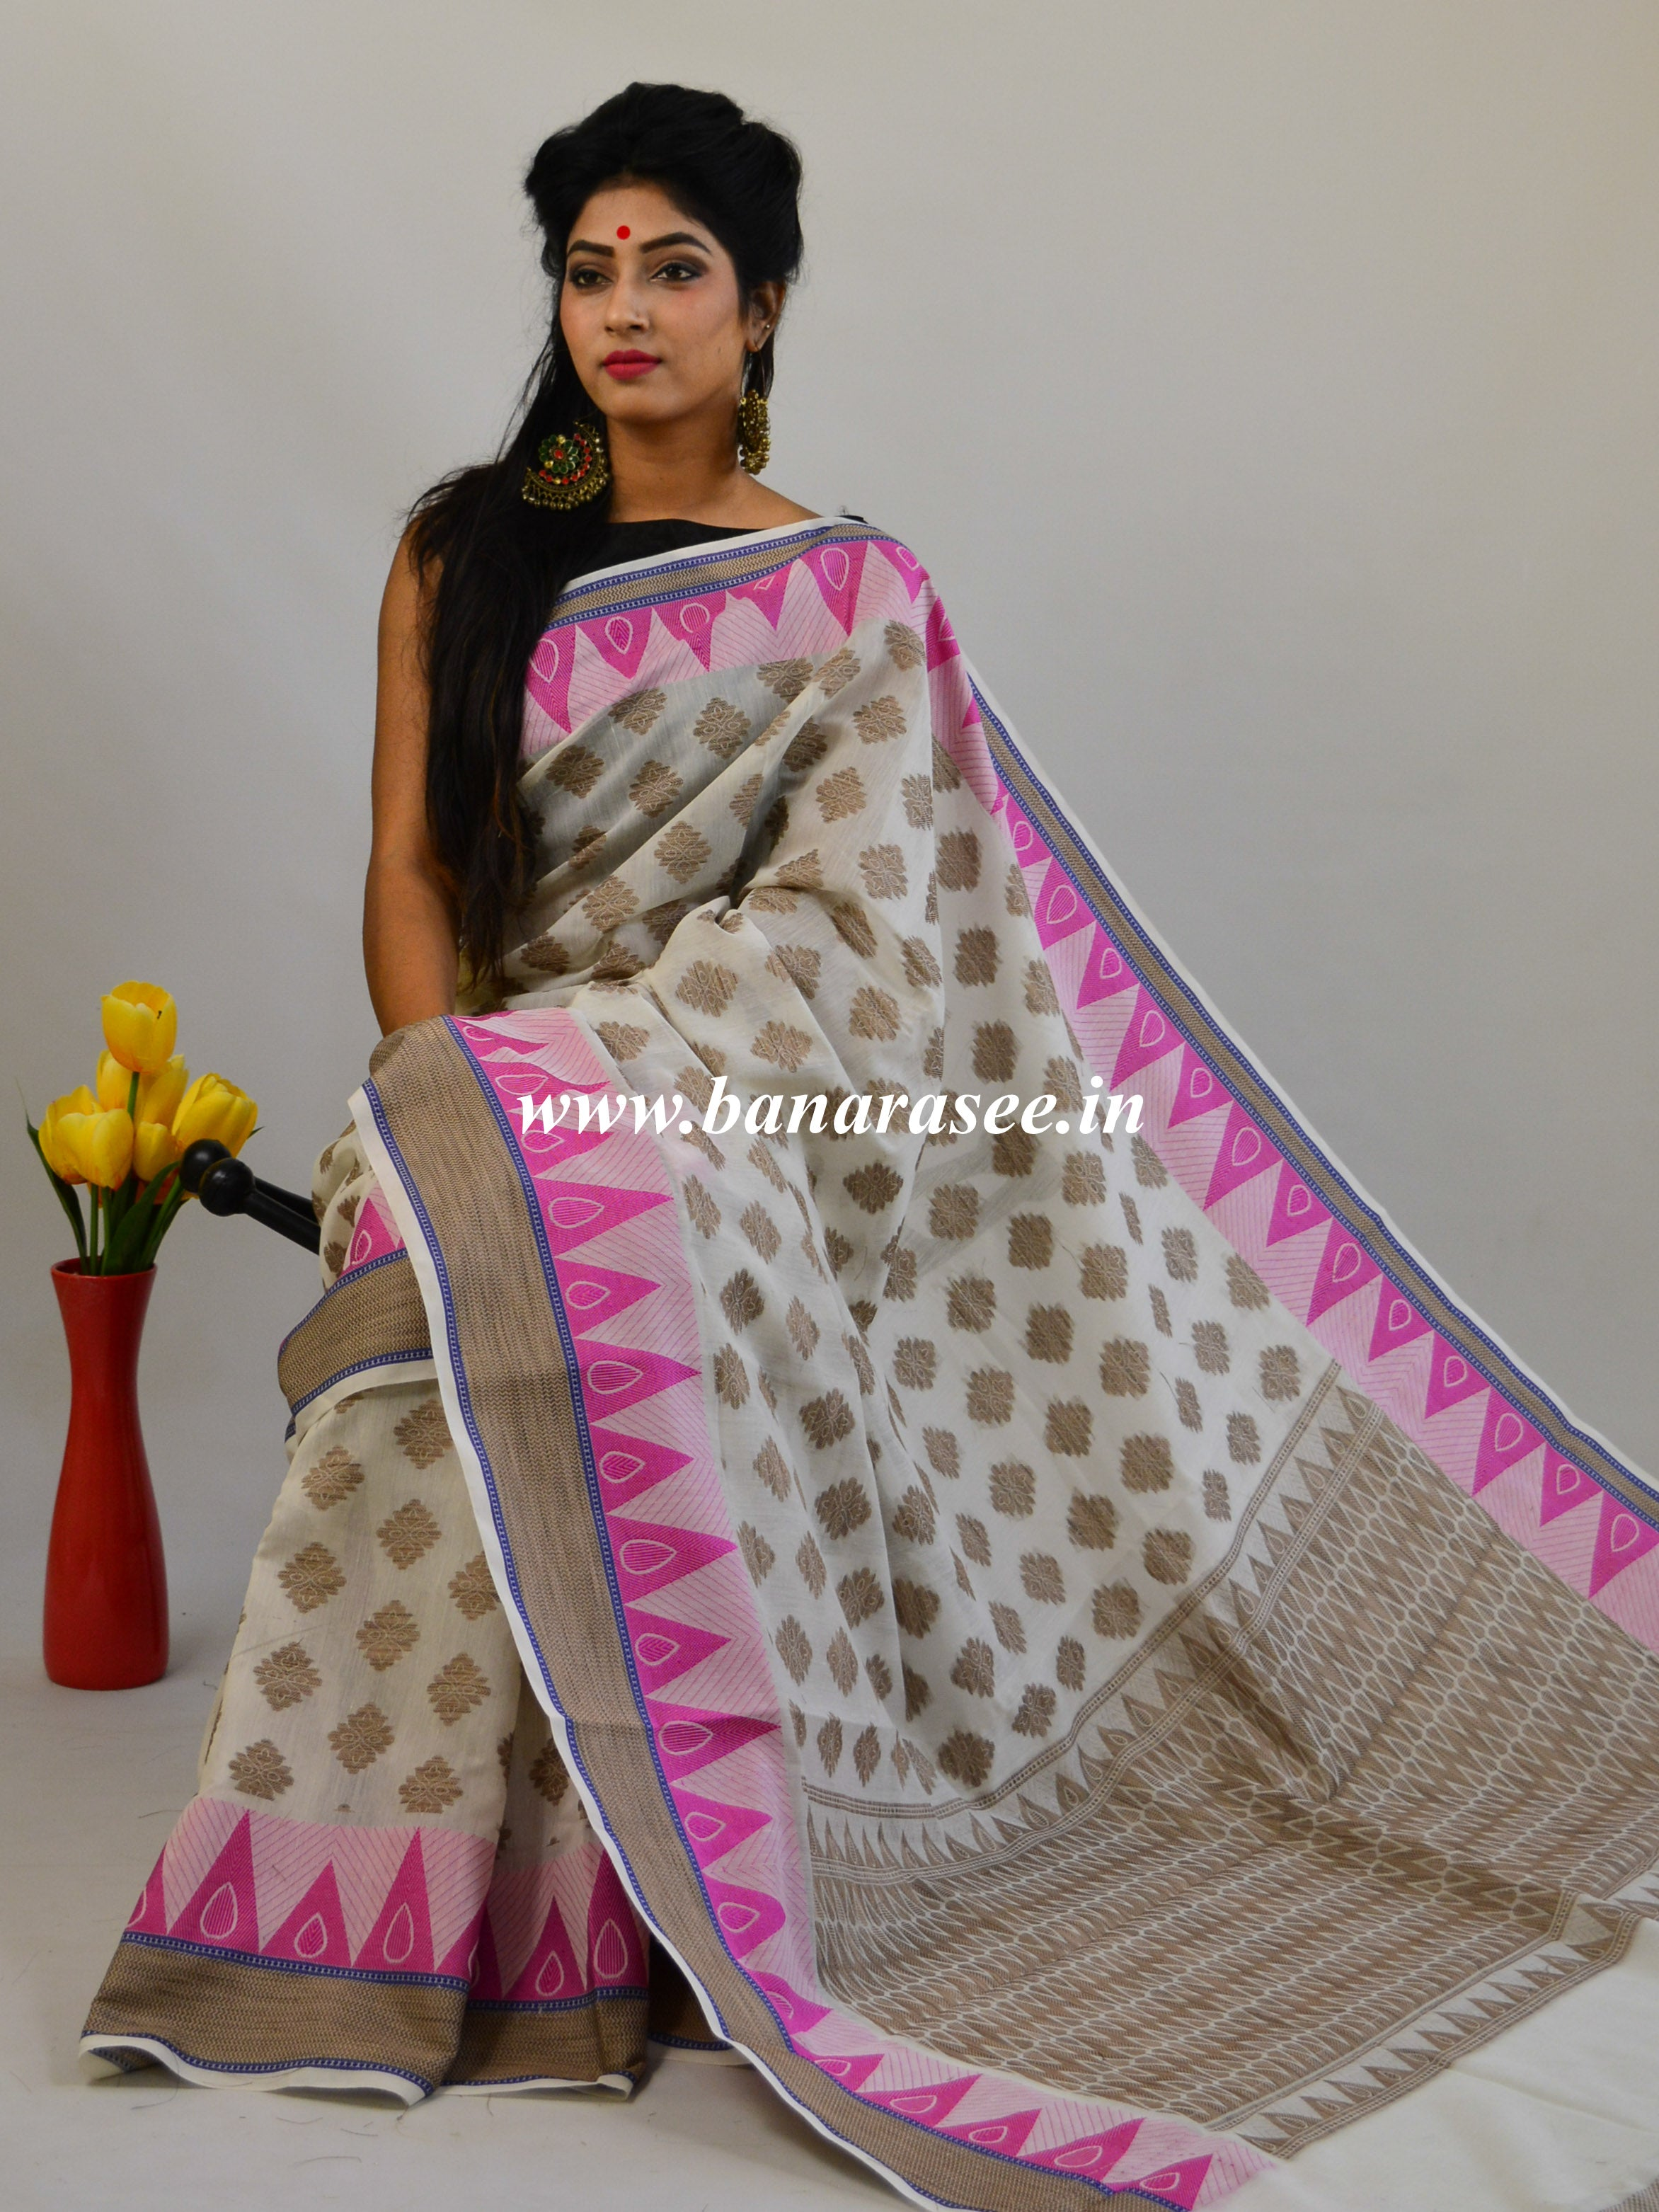 Banarasee Handloom Cotton Saree with Resham Work-White